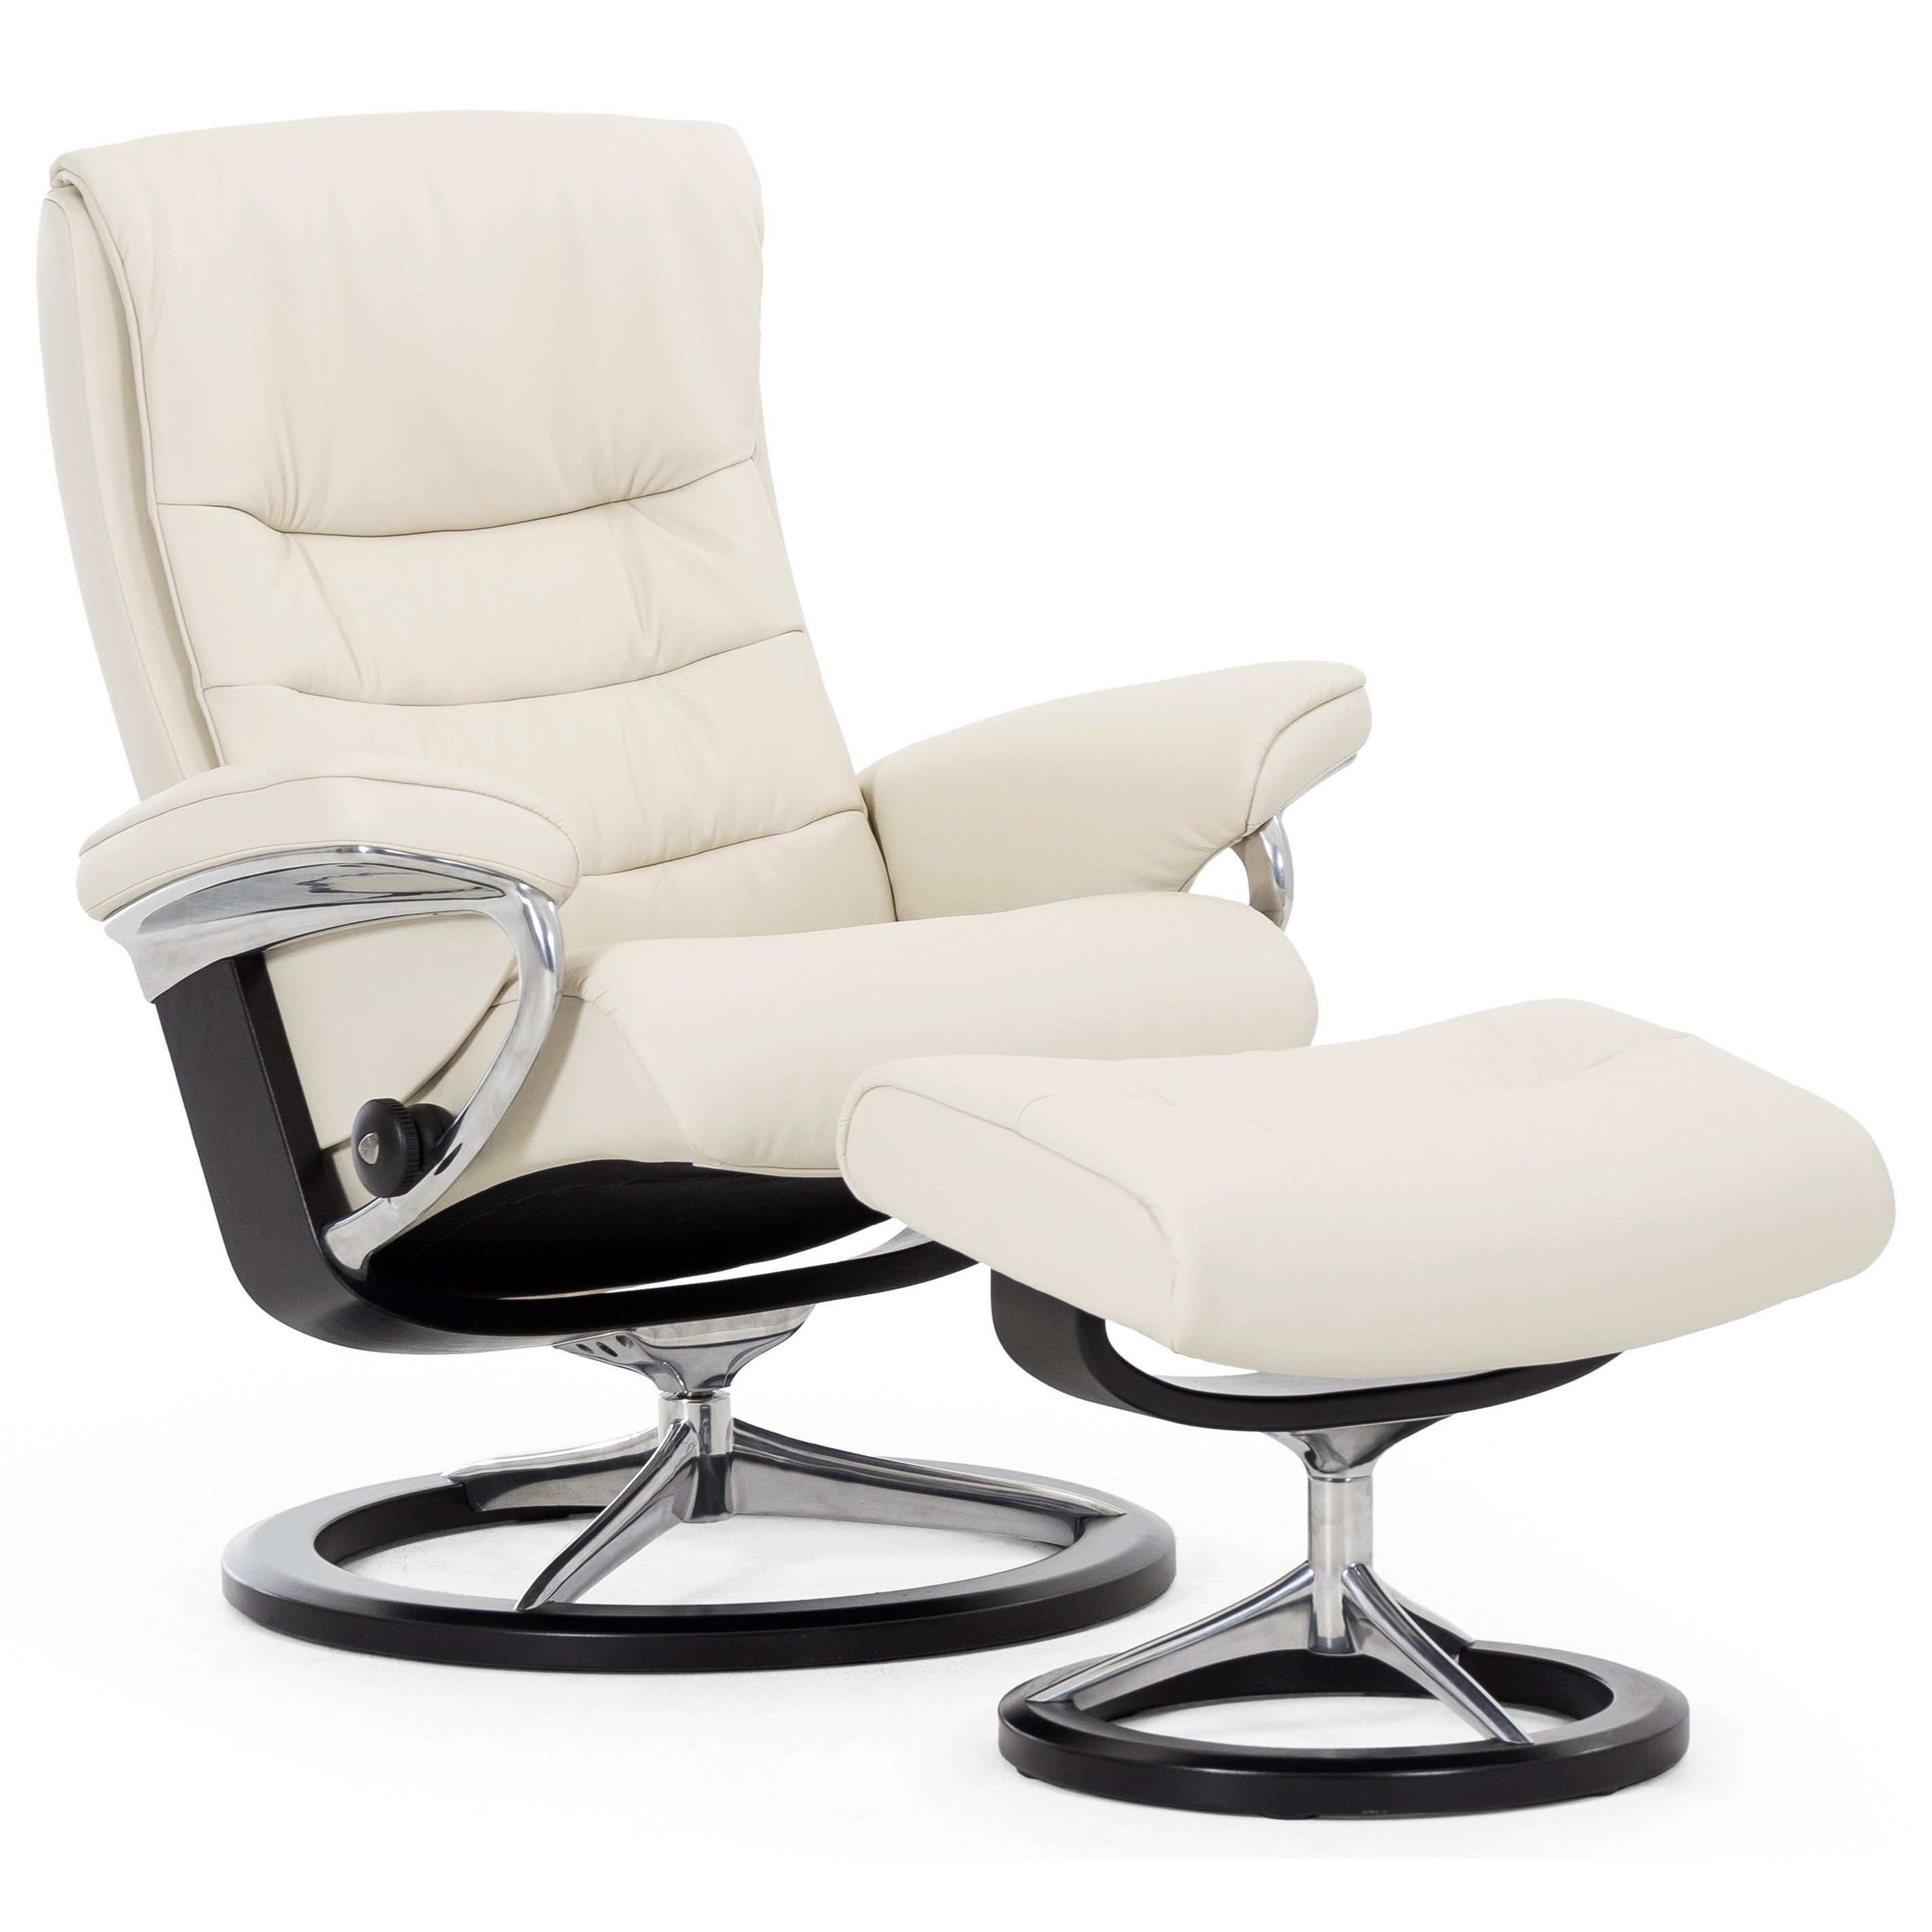 Stressless Nordic Large Signature Chair By Stressless By Ekornes